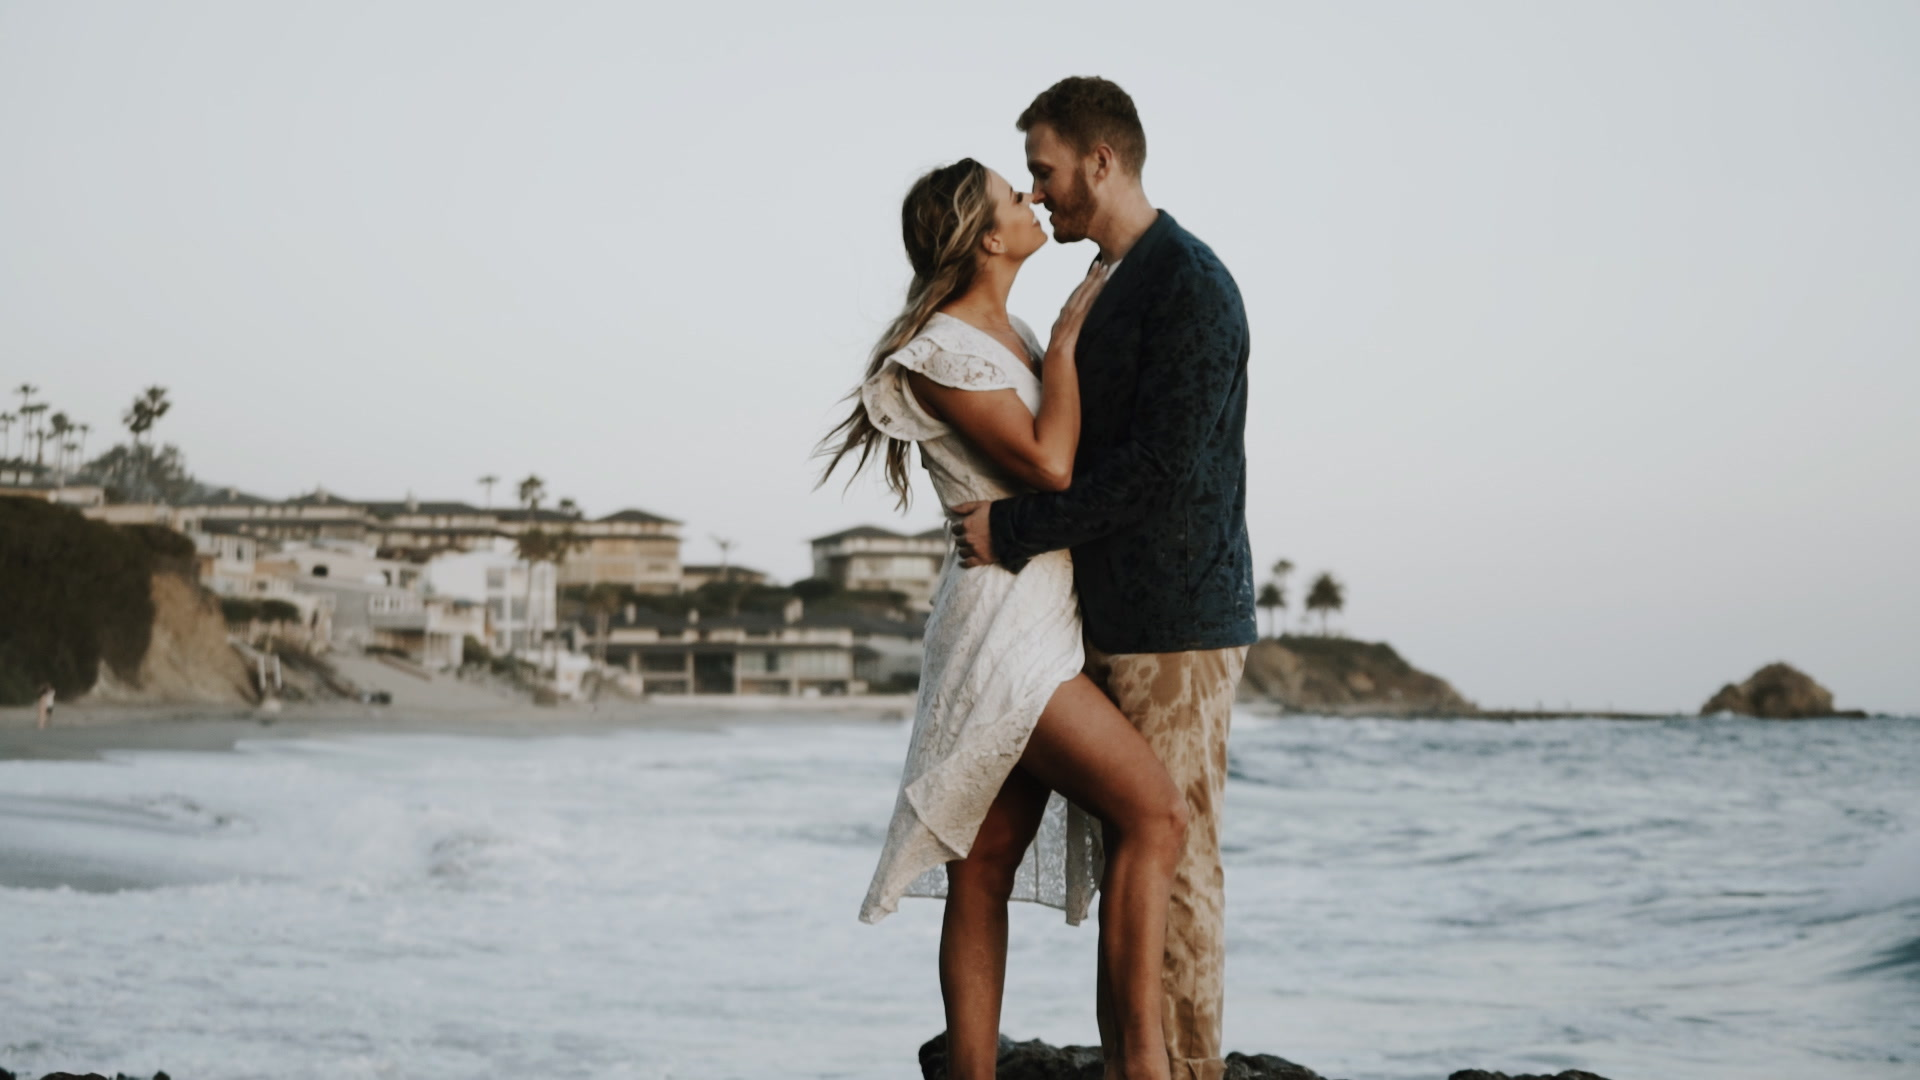 Sean + Morgan | Laguna Beach, California | Bakers Ranch